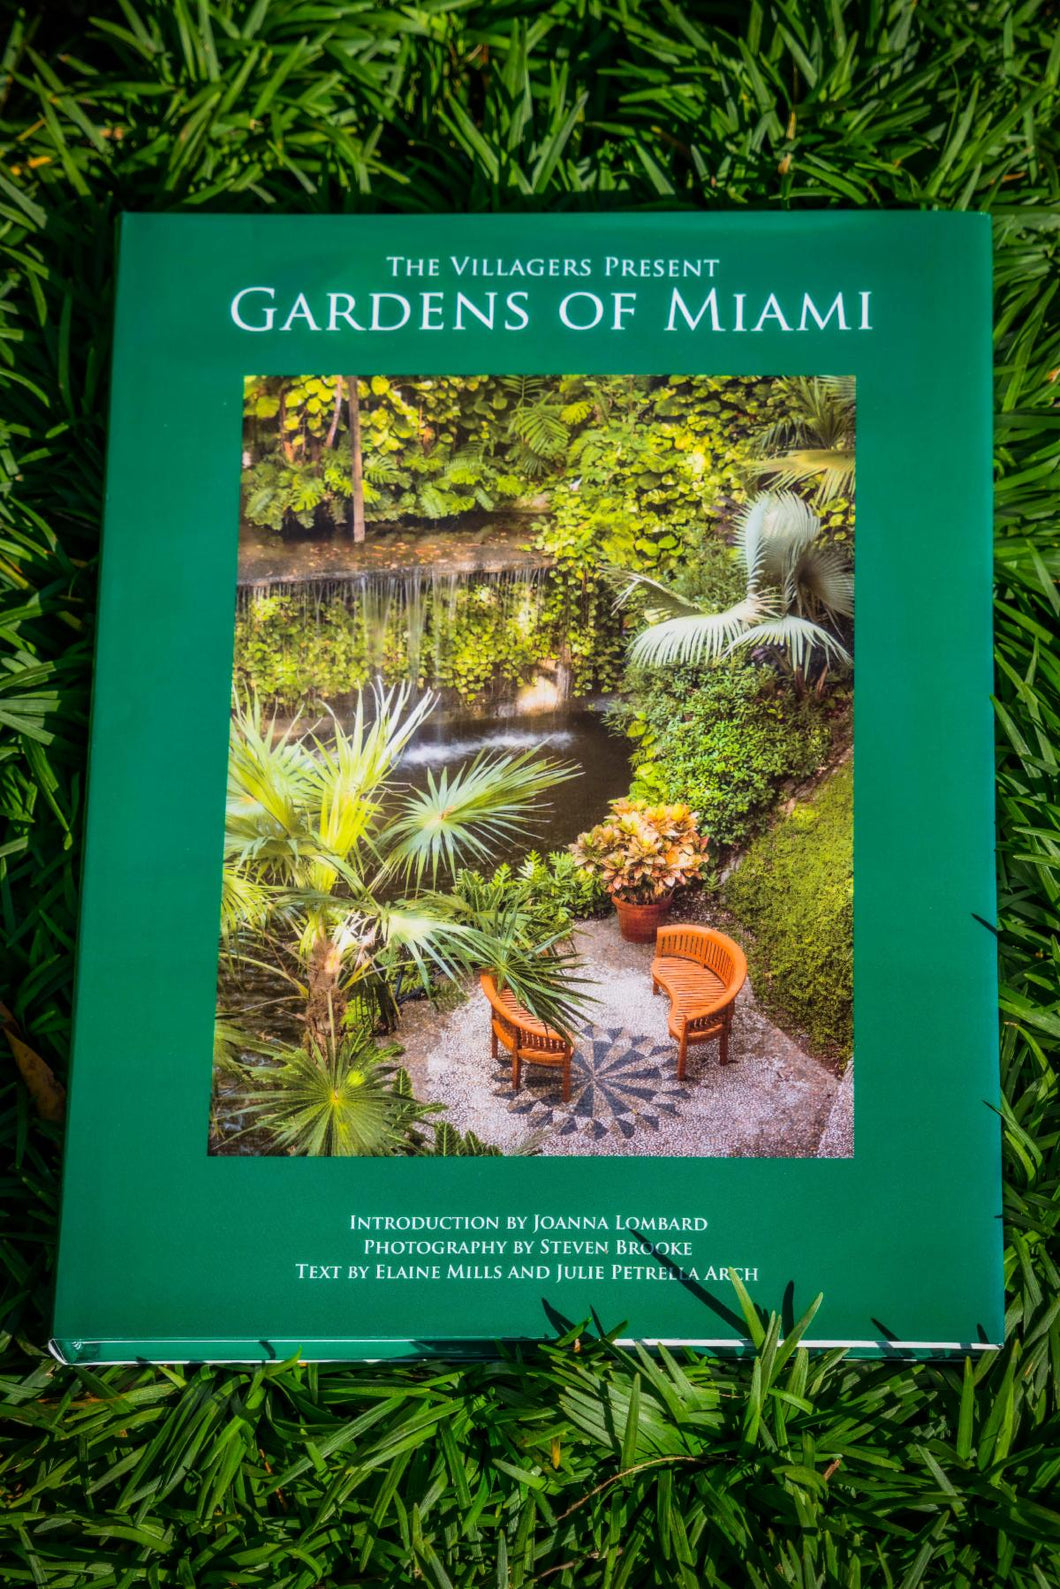 Gardens Of Miami presented by The Villagers